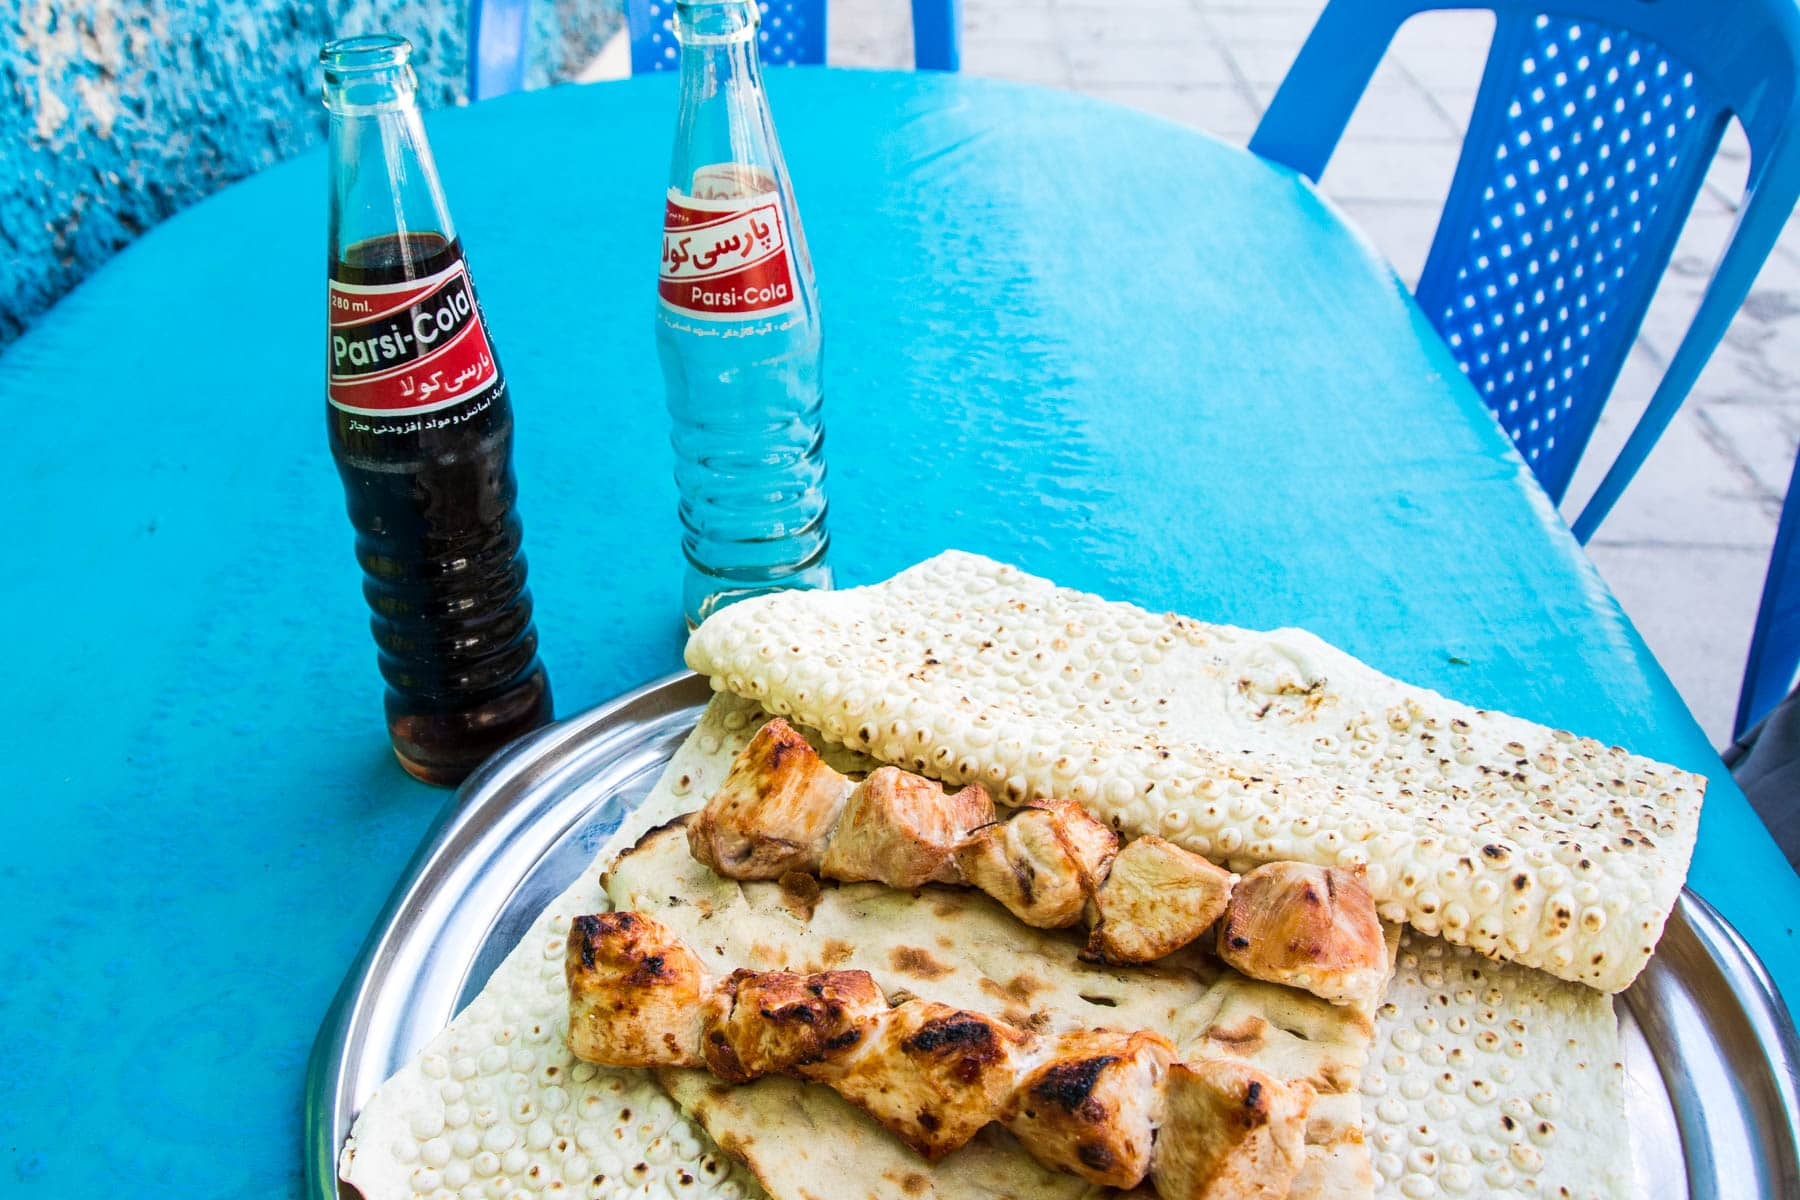 Local Cola and kebab